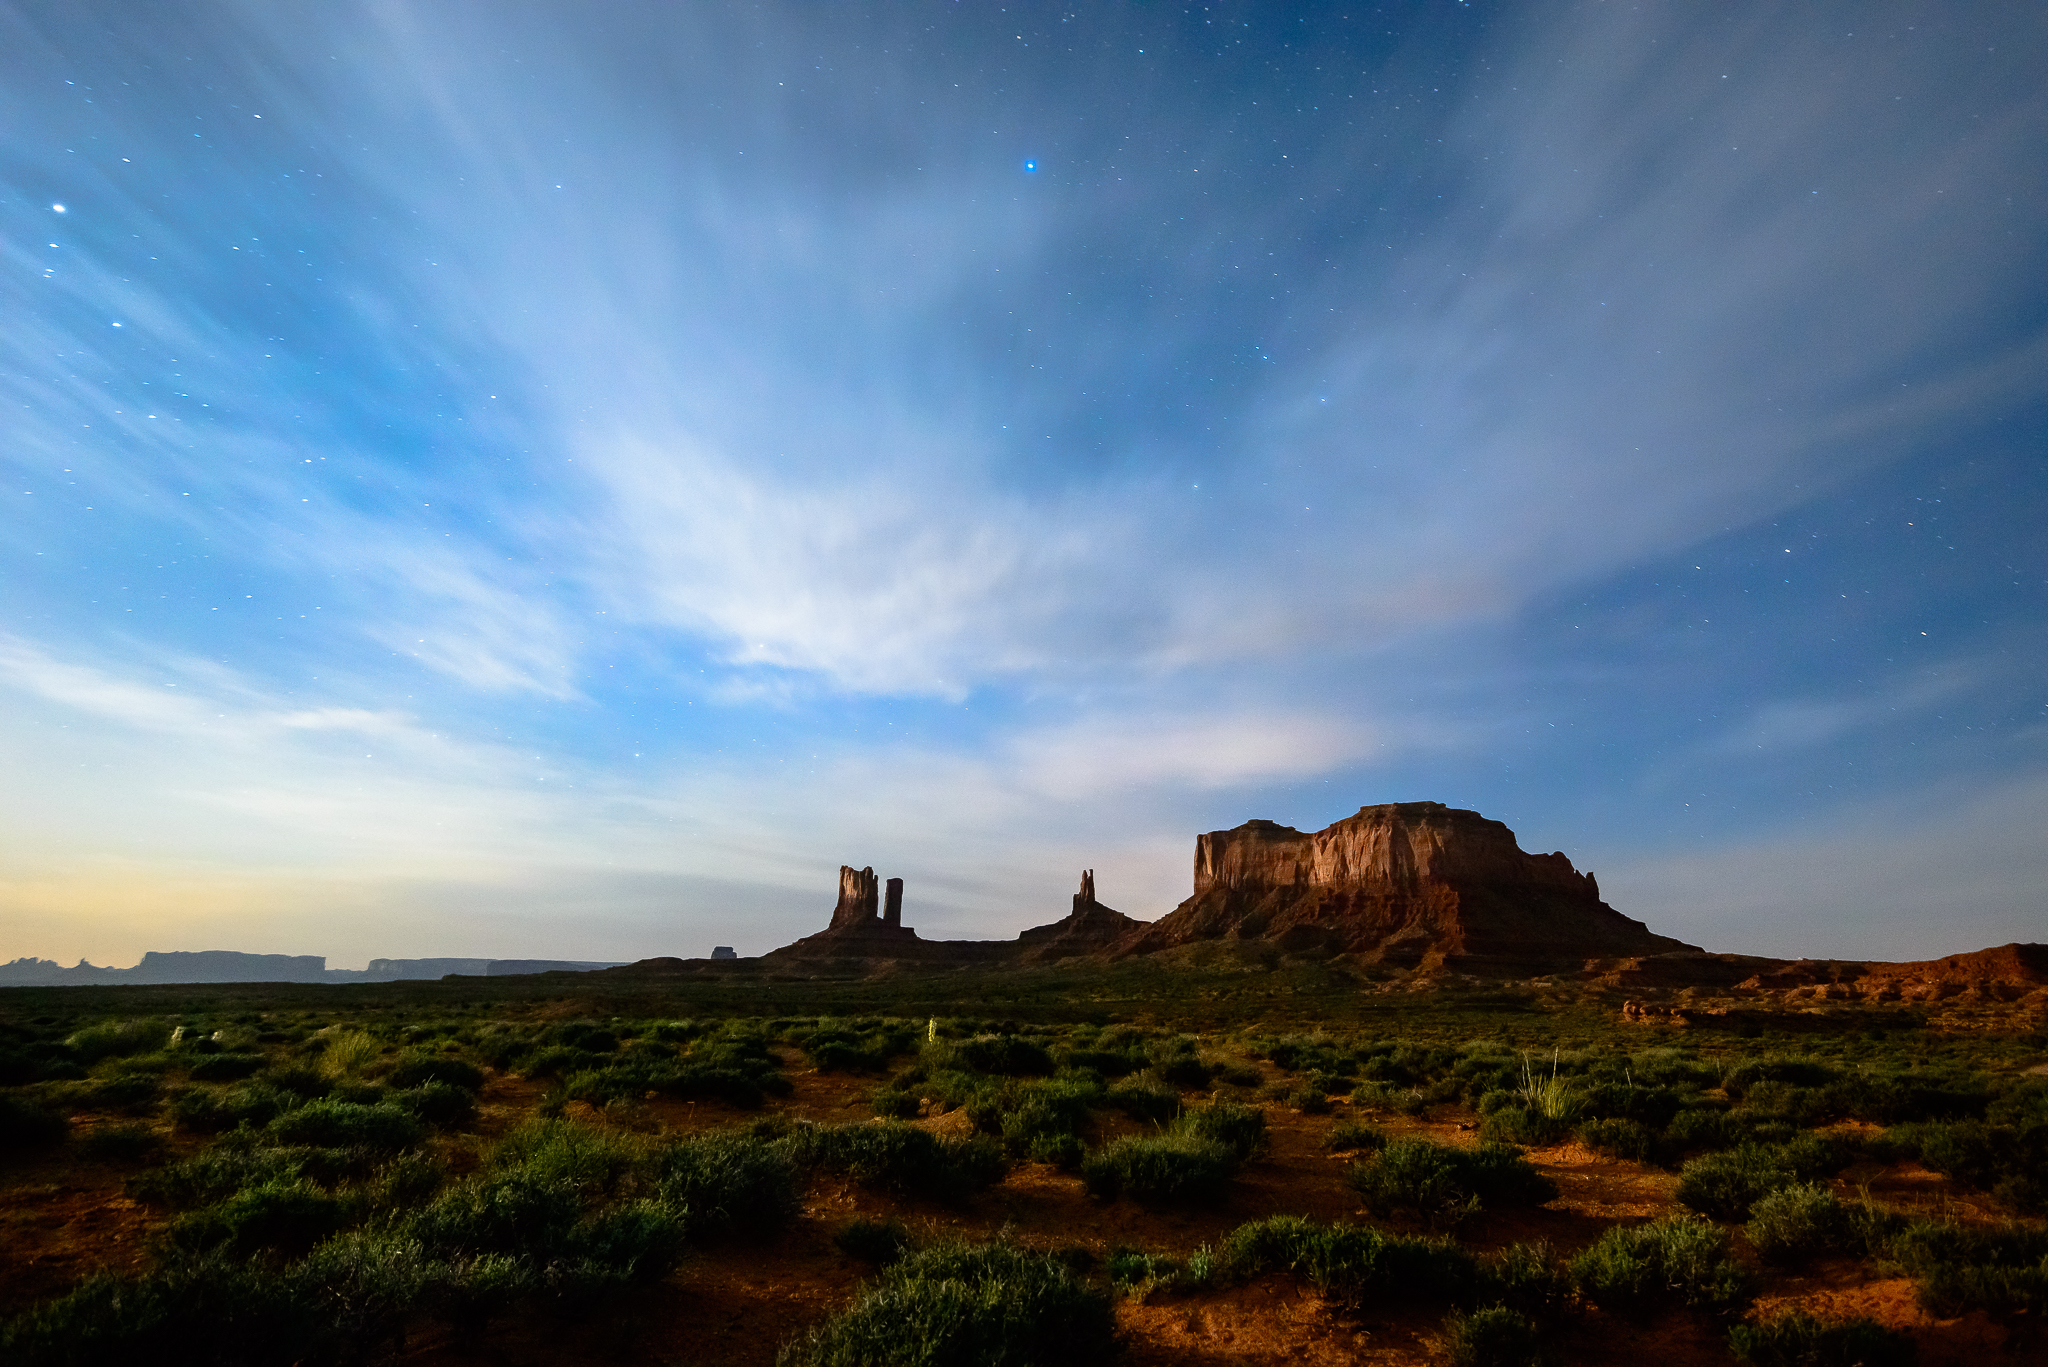 The power of Monument Valley can't go unnoticed.